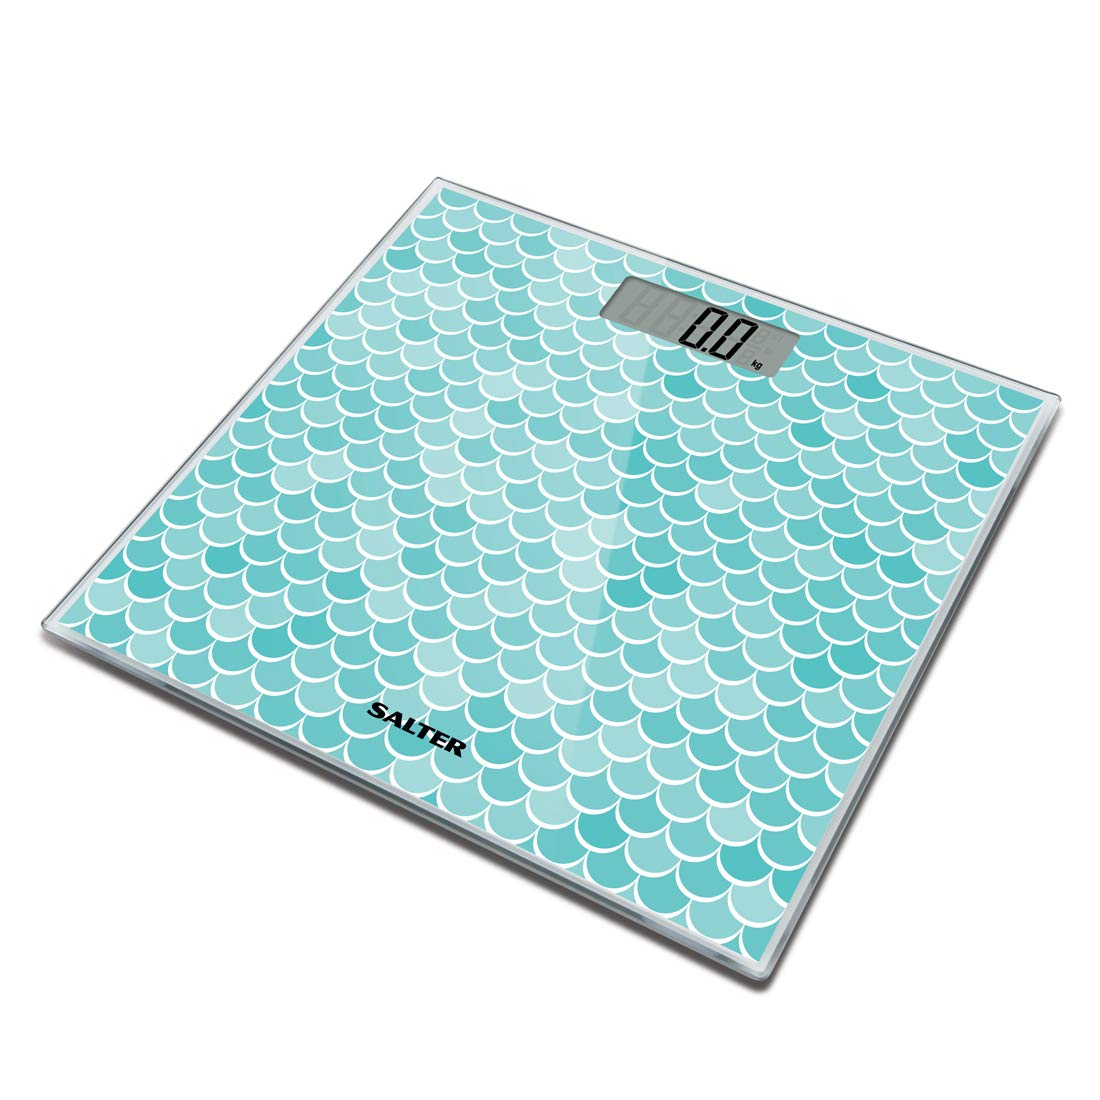 Salter Mermaid Digital Bathroom Scales - Electronic Scale for Body Weighing, Toughened Glass Platform, Step-On for Instant Reading, Metric + Imperial, Easy to Read Display - 15 Year Guarantee FKA Brands Ltd 9212 MR3R